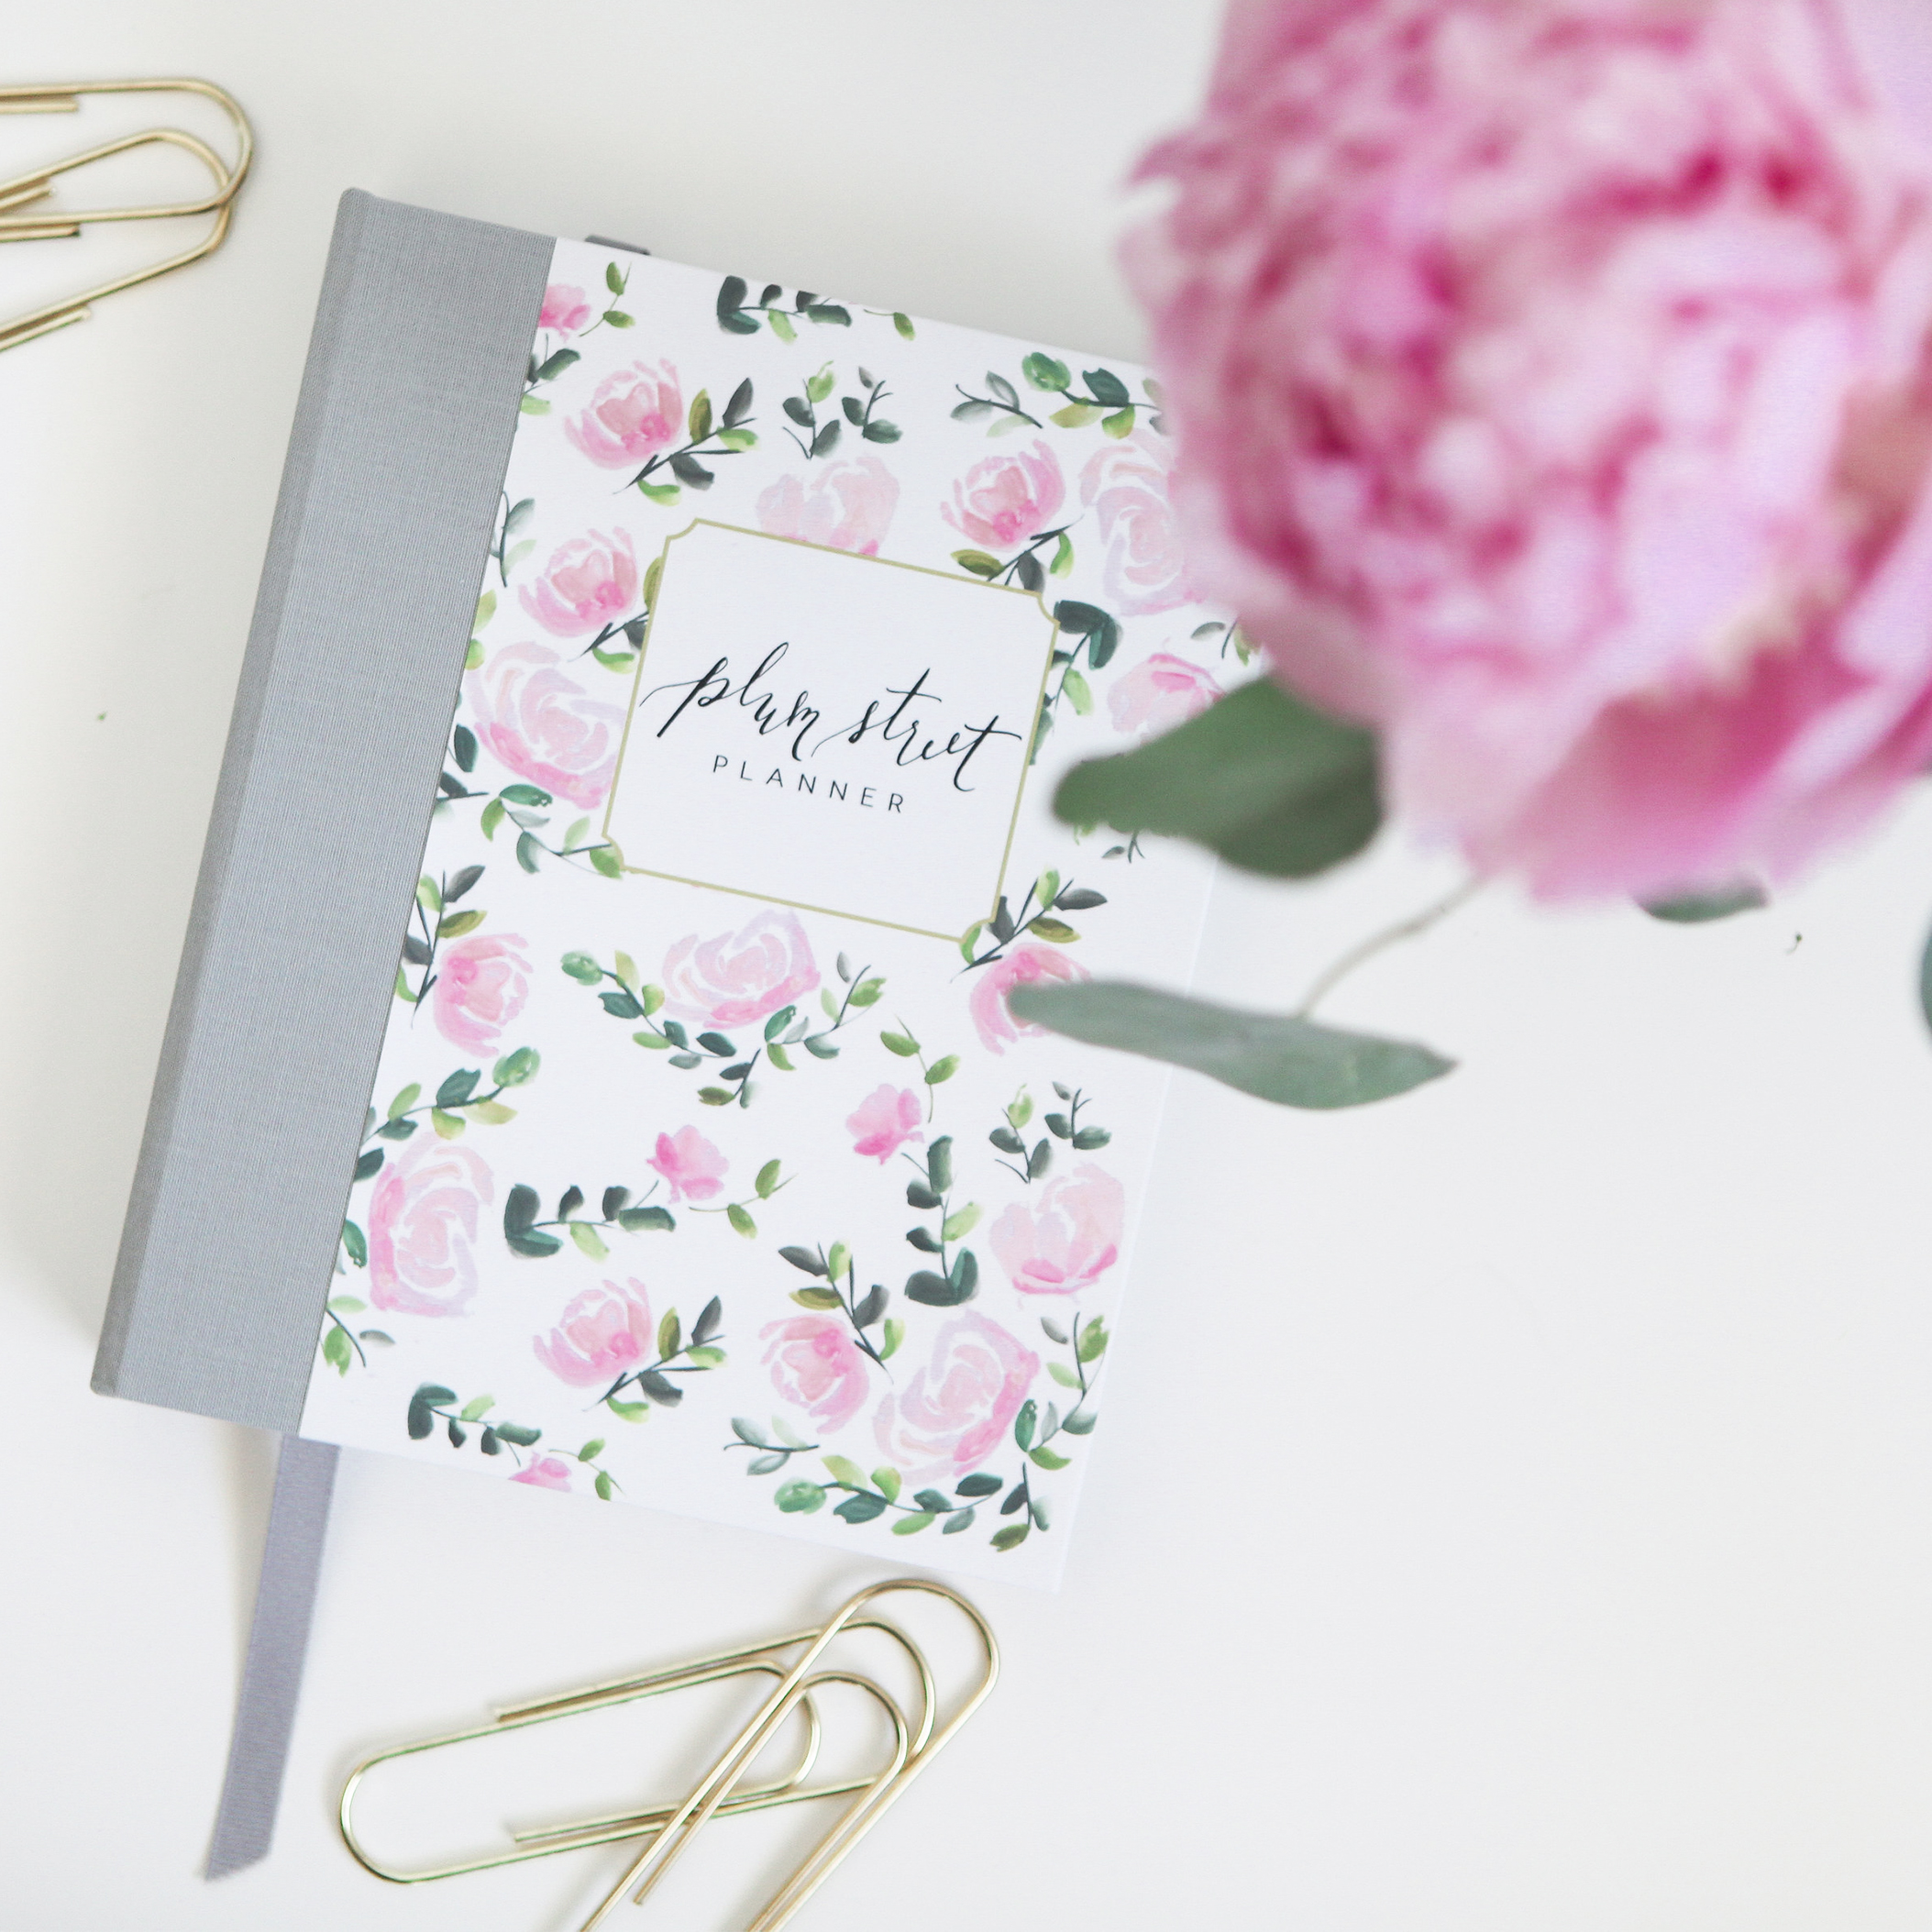 2017 floral planner plum street collective